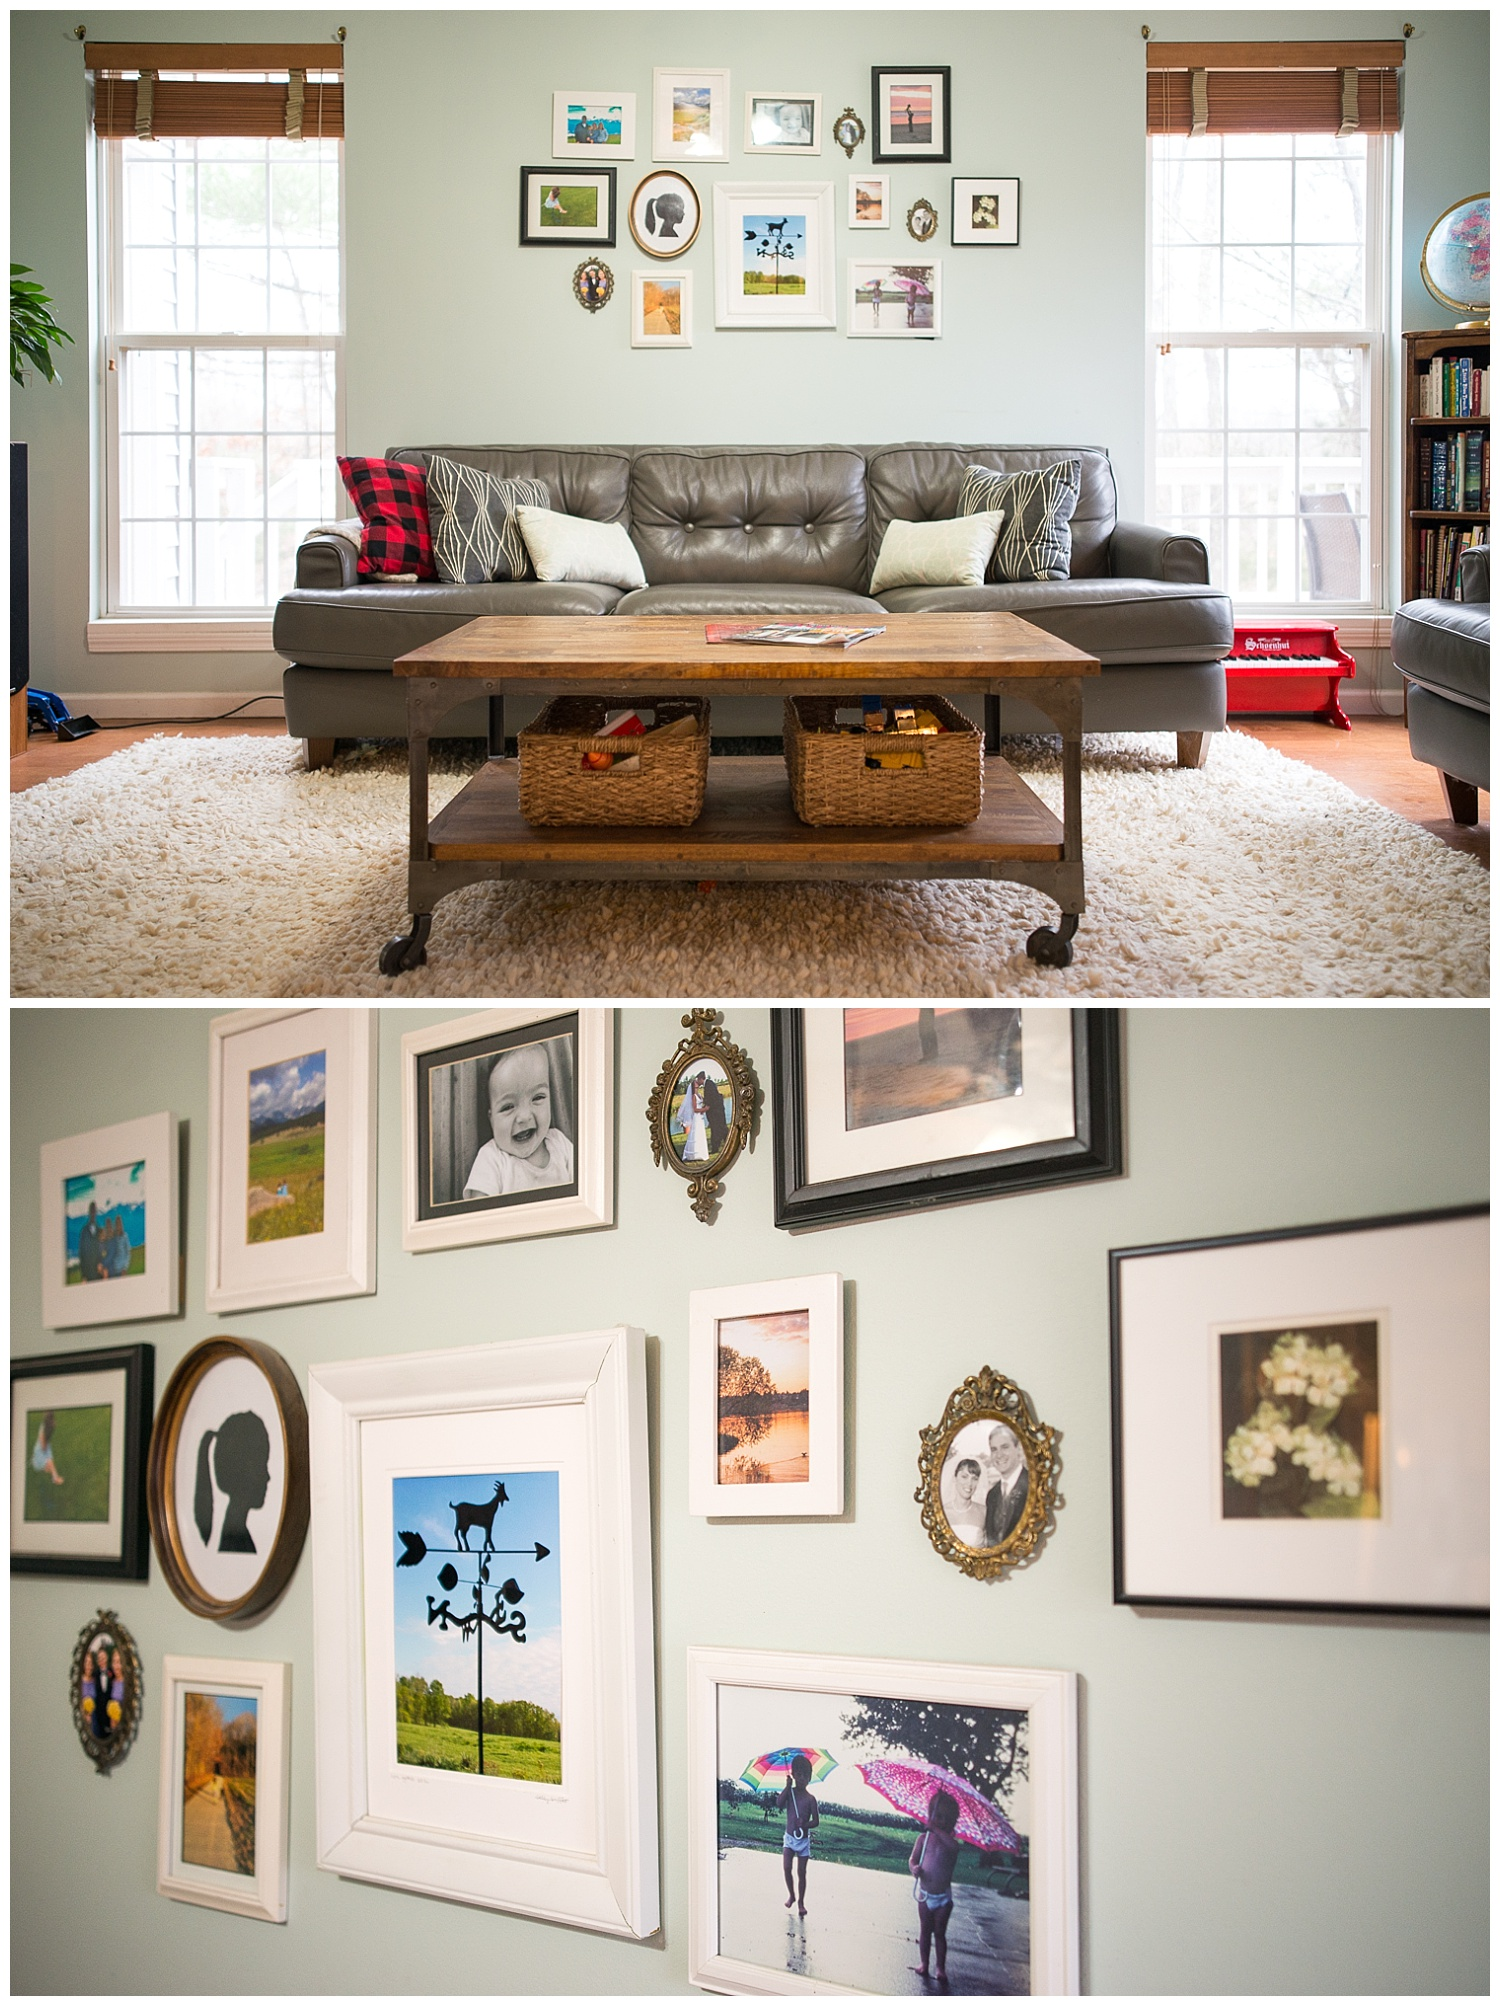 What a great scene.  Helen made the throw pillows on the couch, the wall collage was created with meaningful artwork and found frames.  The living room furniture was bought online.